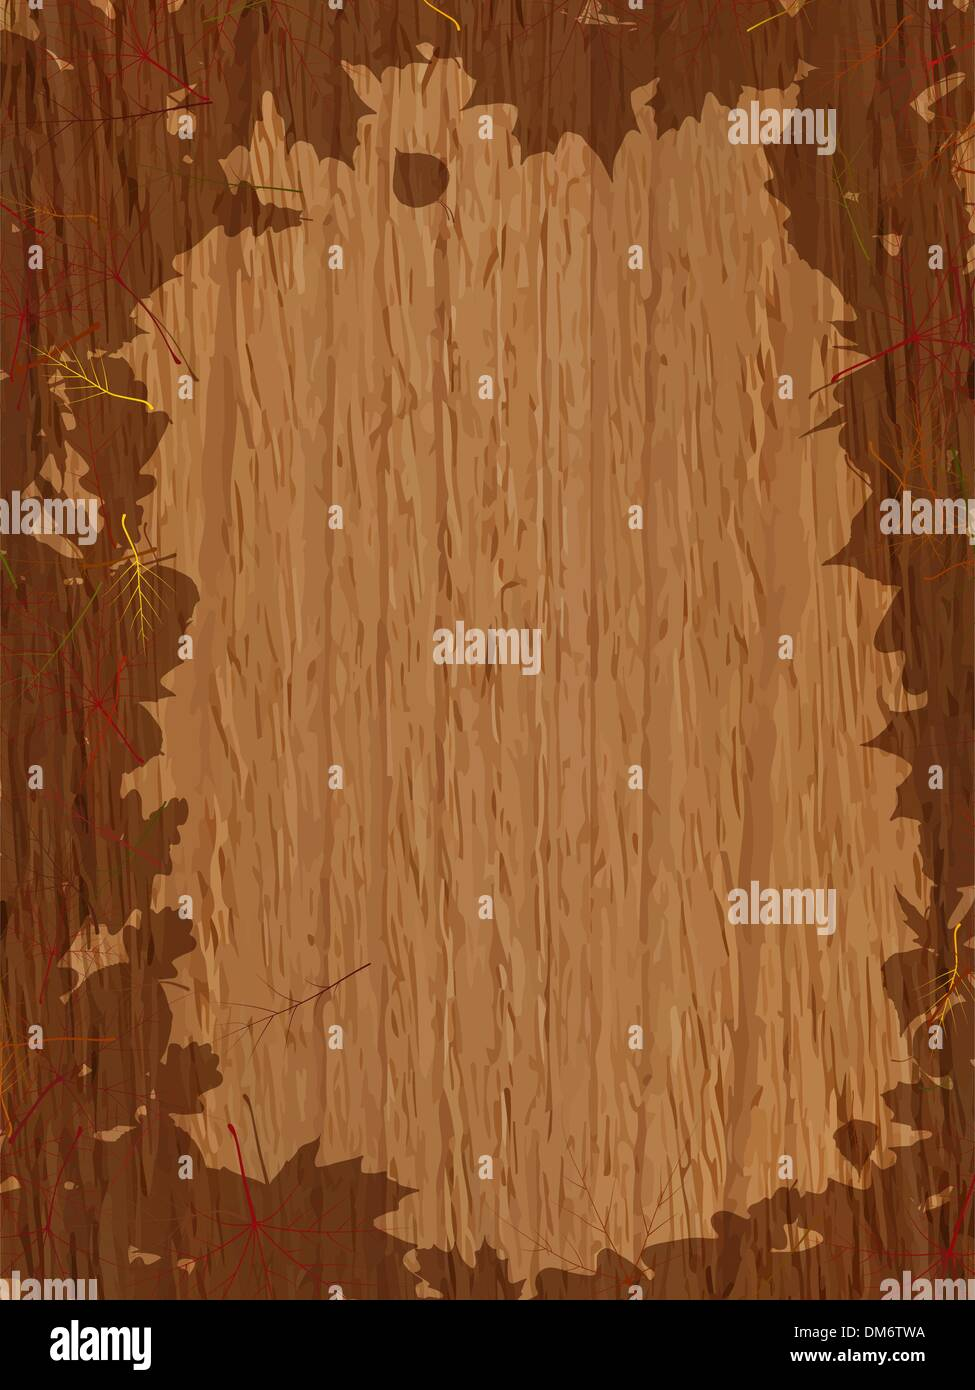 Autumn background with Pumpkin on wooden board. - Stock Image